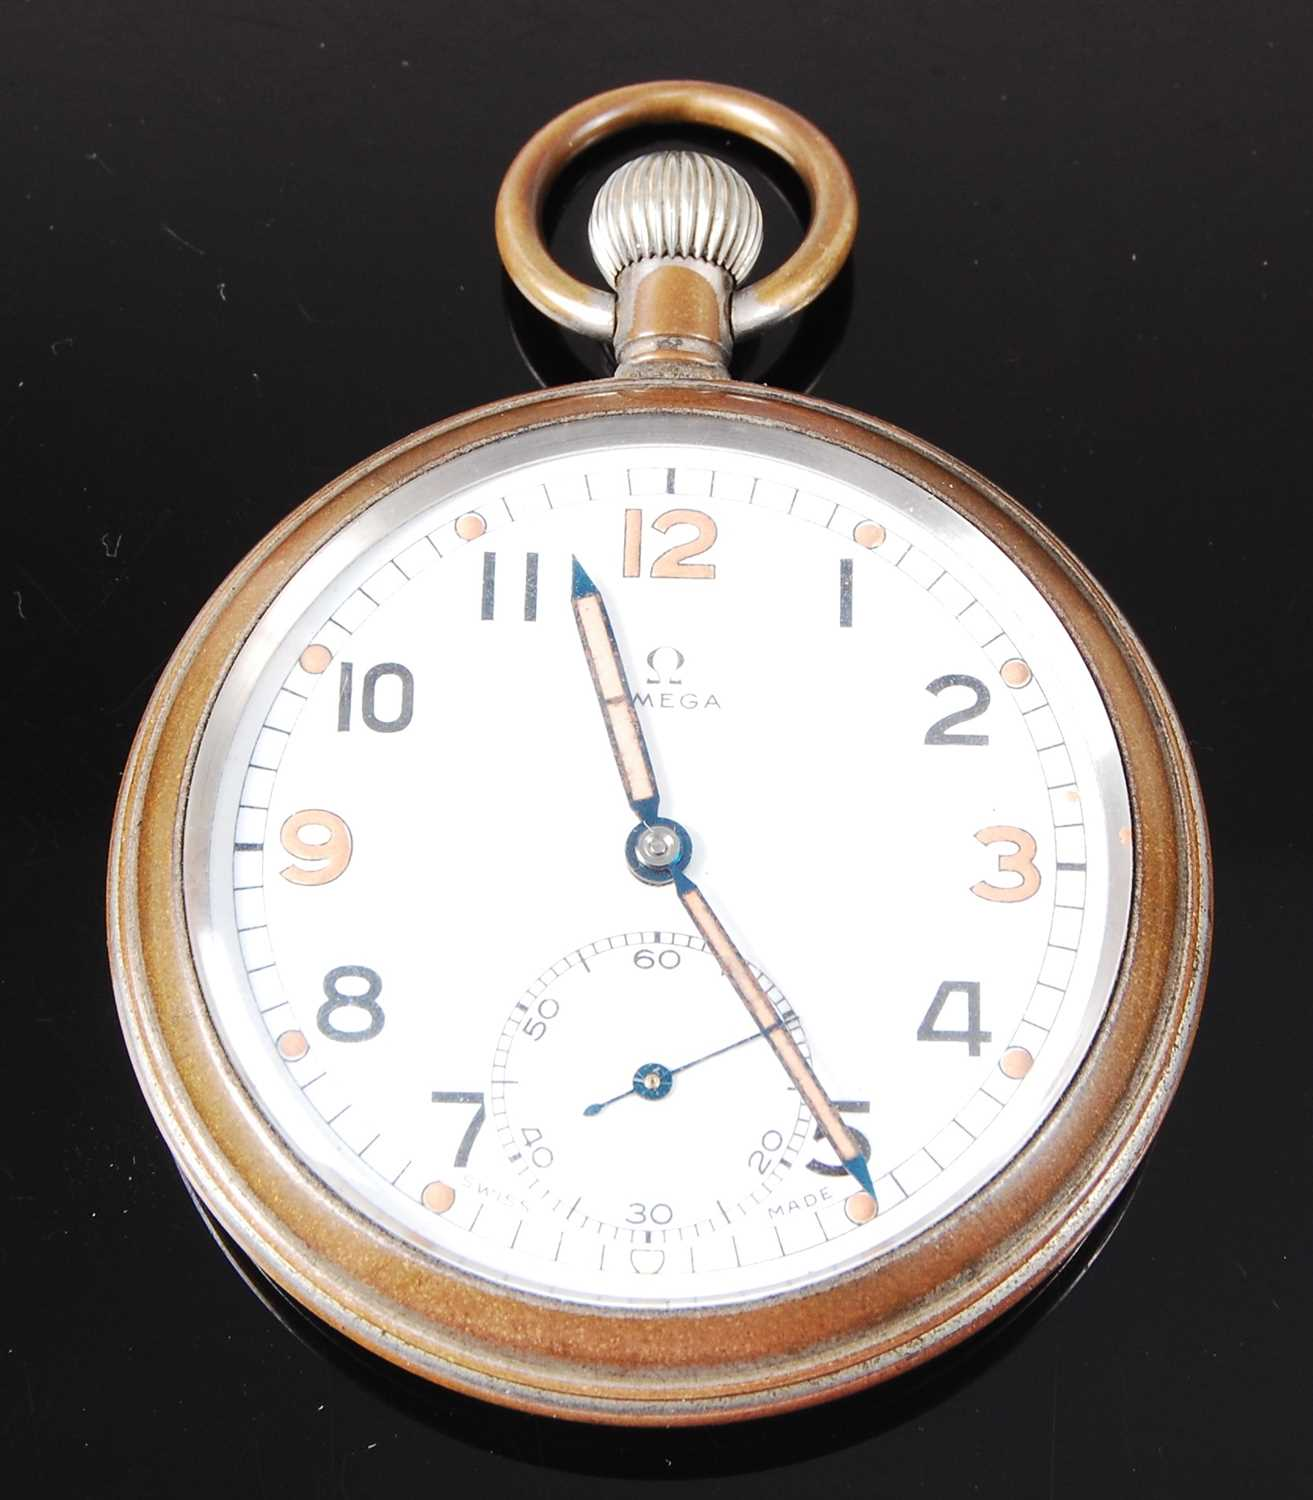 Lot 32-An Omega military issue nickel cased open face pocket watch